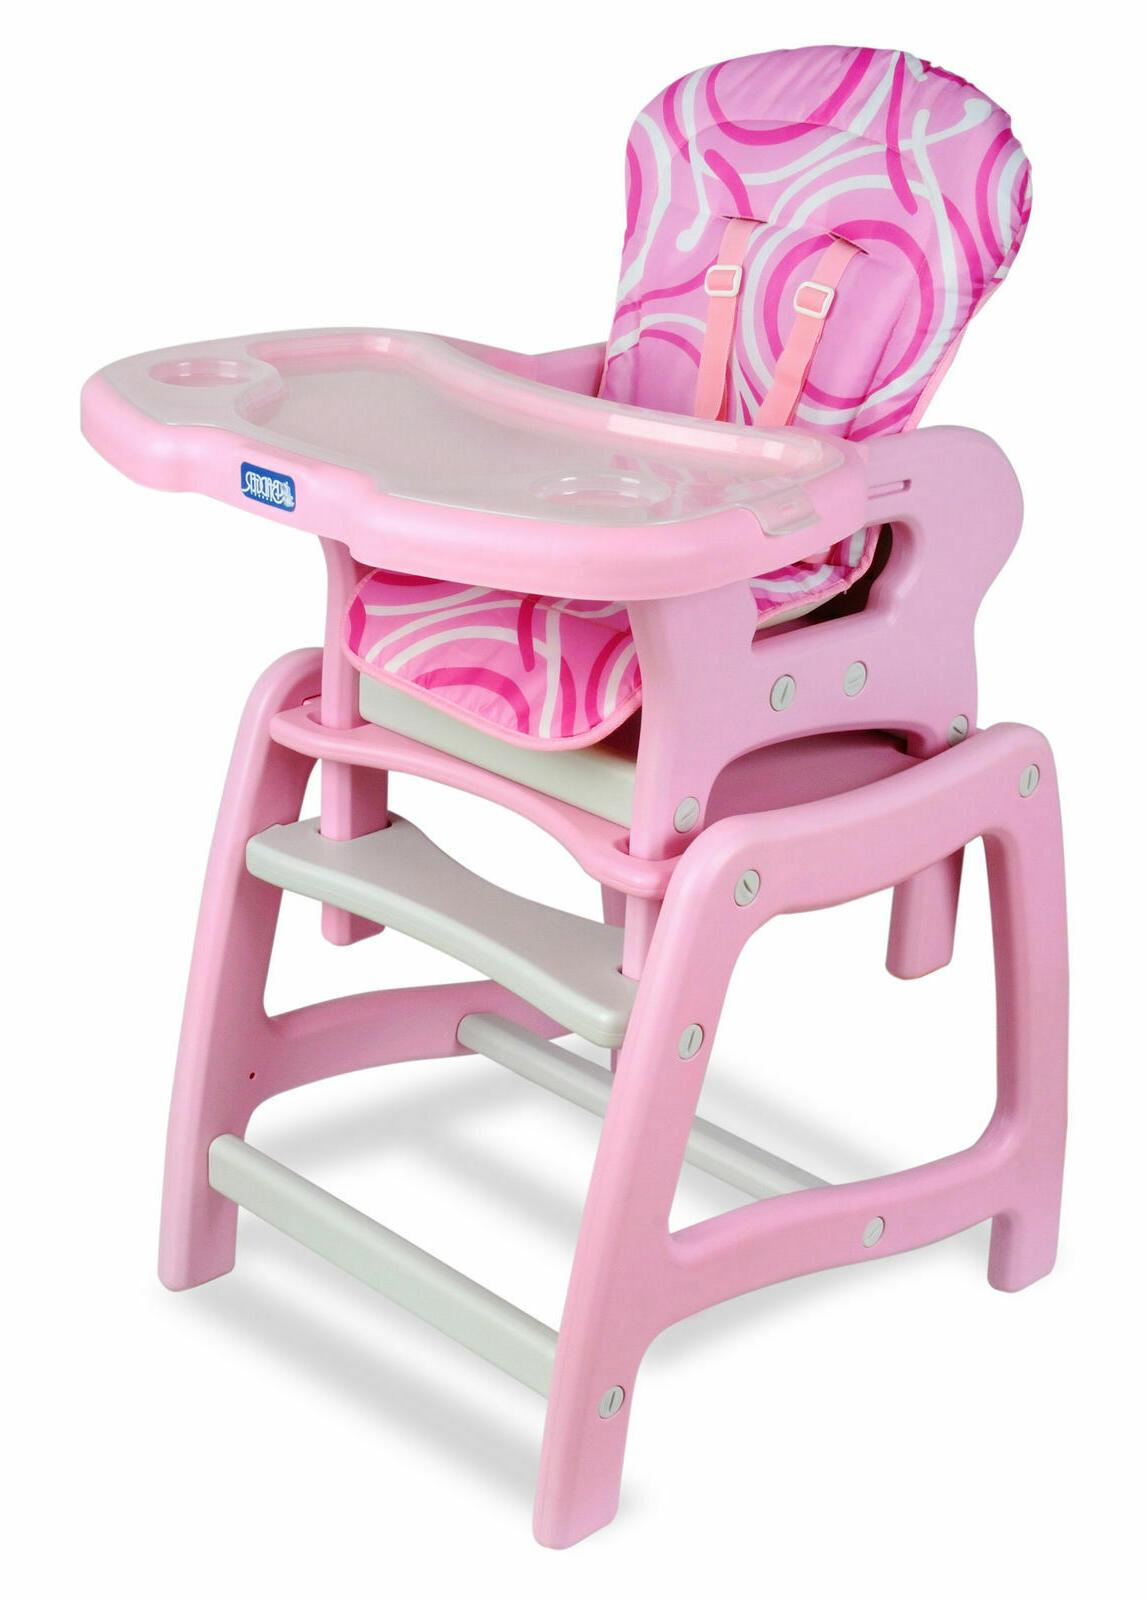 convertible high chair baby feeding booster seat